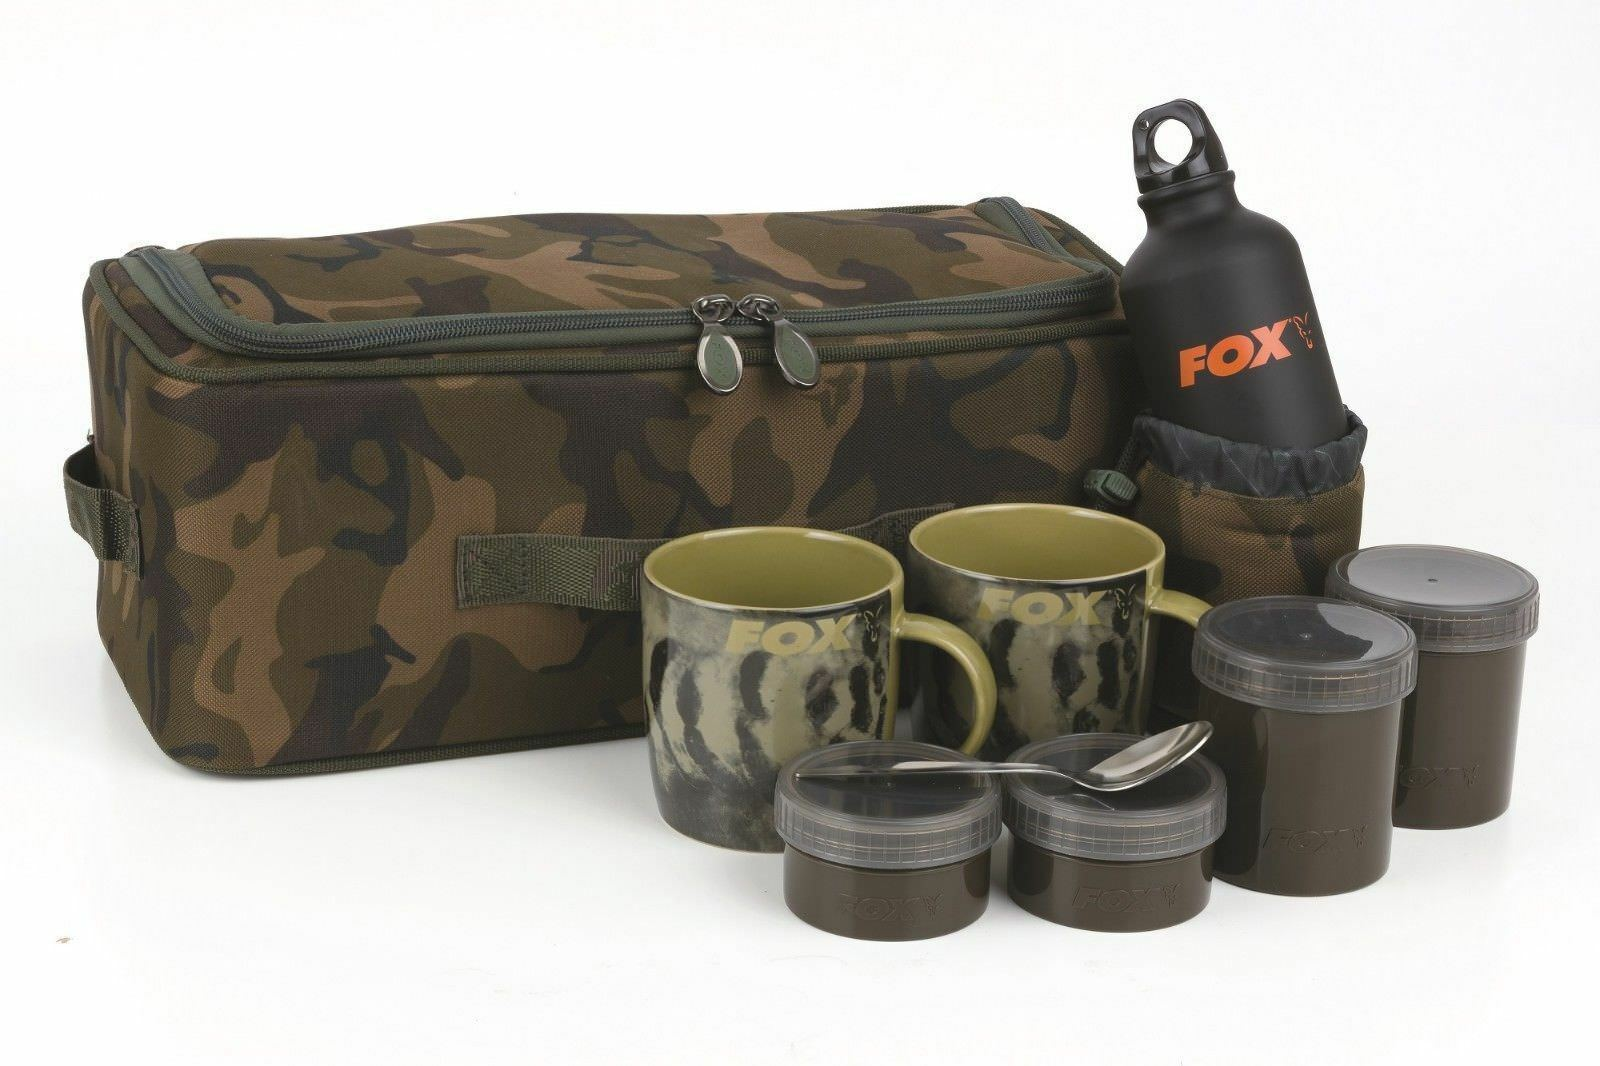 Fox Camolite Brew Kit Bag NEW Carp Fishing Cookware  Bag - CLU323  sale outlet